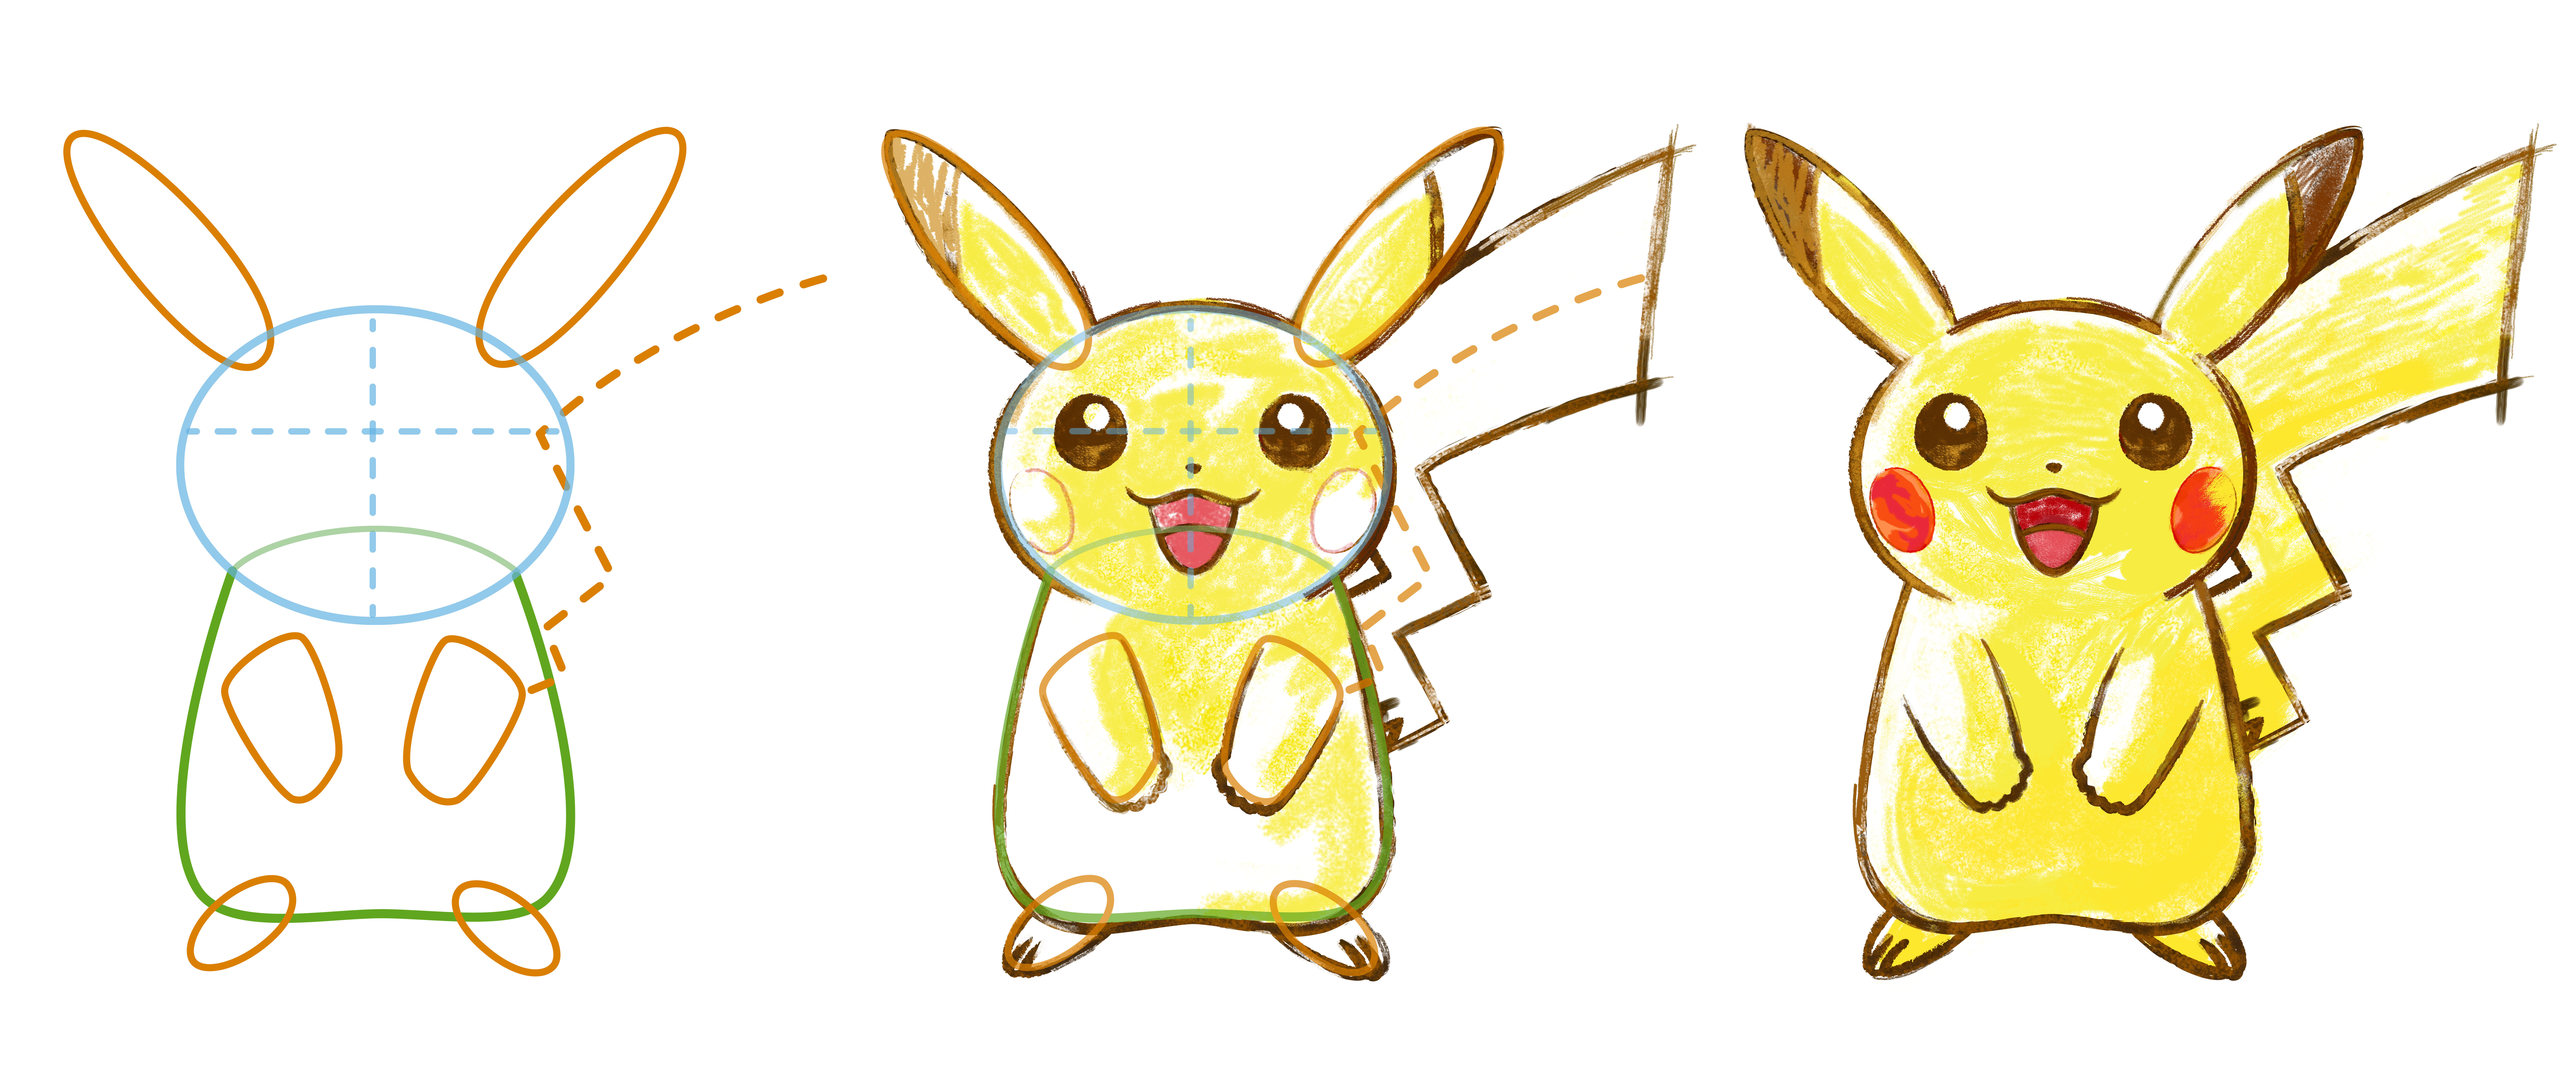 Learn To Draw Your Favorite Pokemon In Pokemon Art Academy For Nintendo 3ds Business Wire